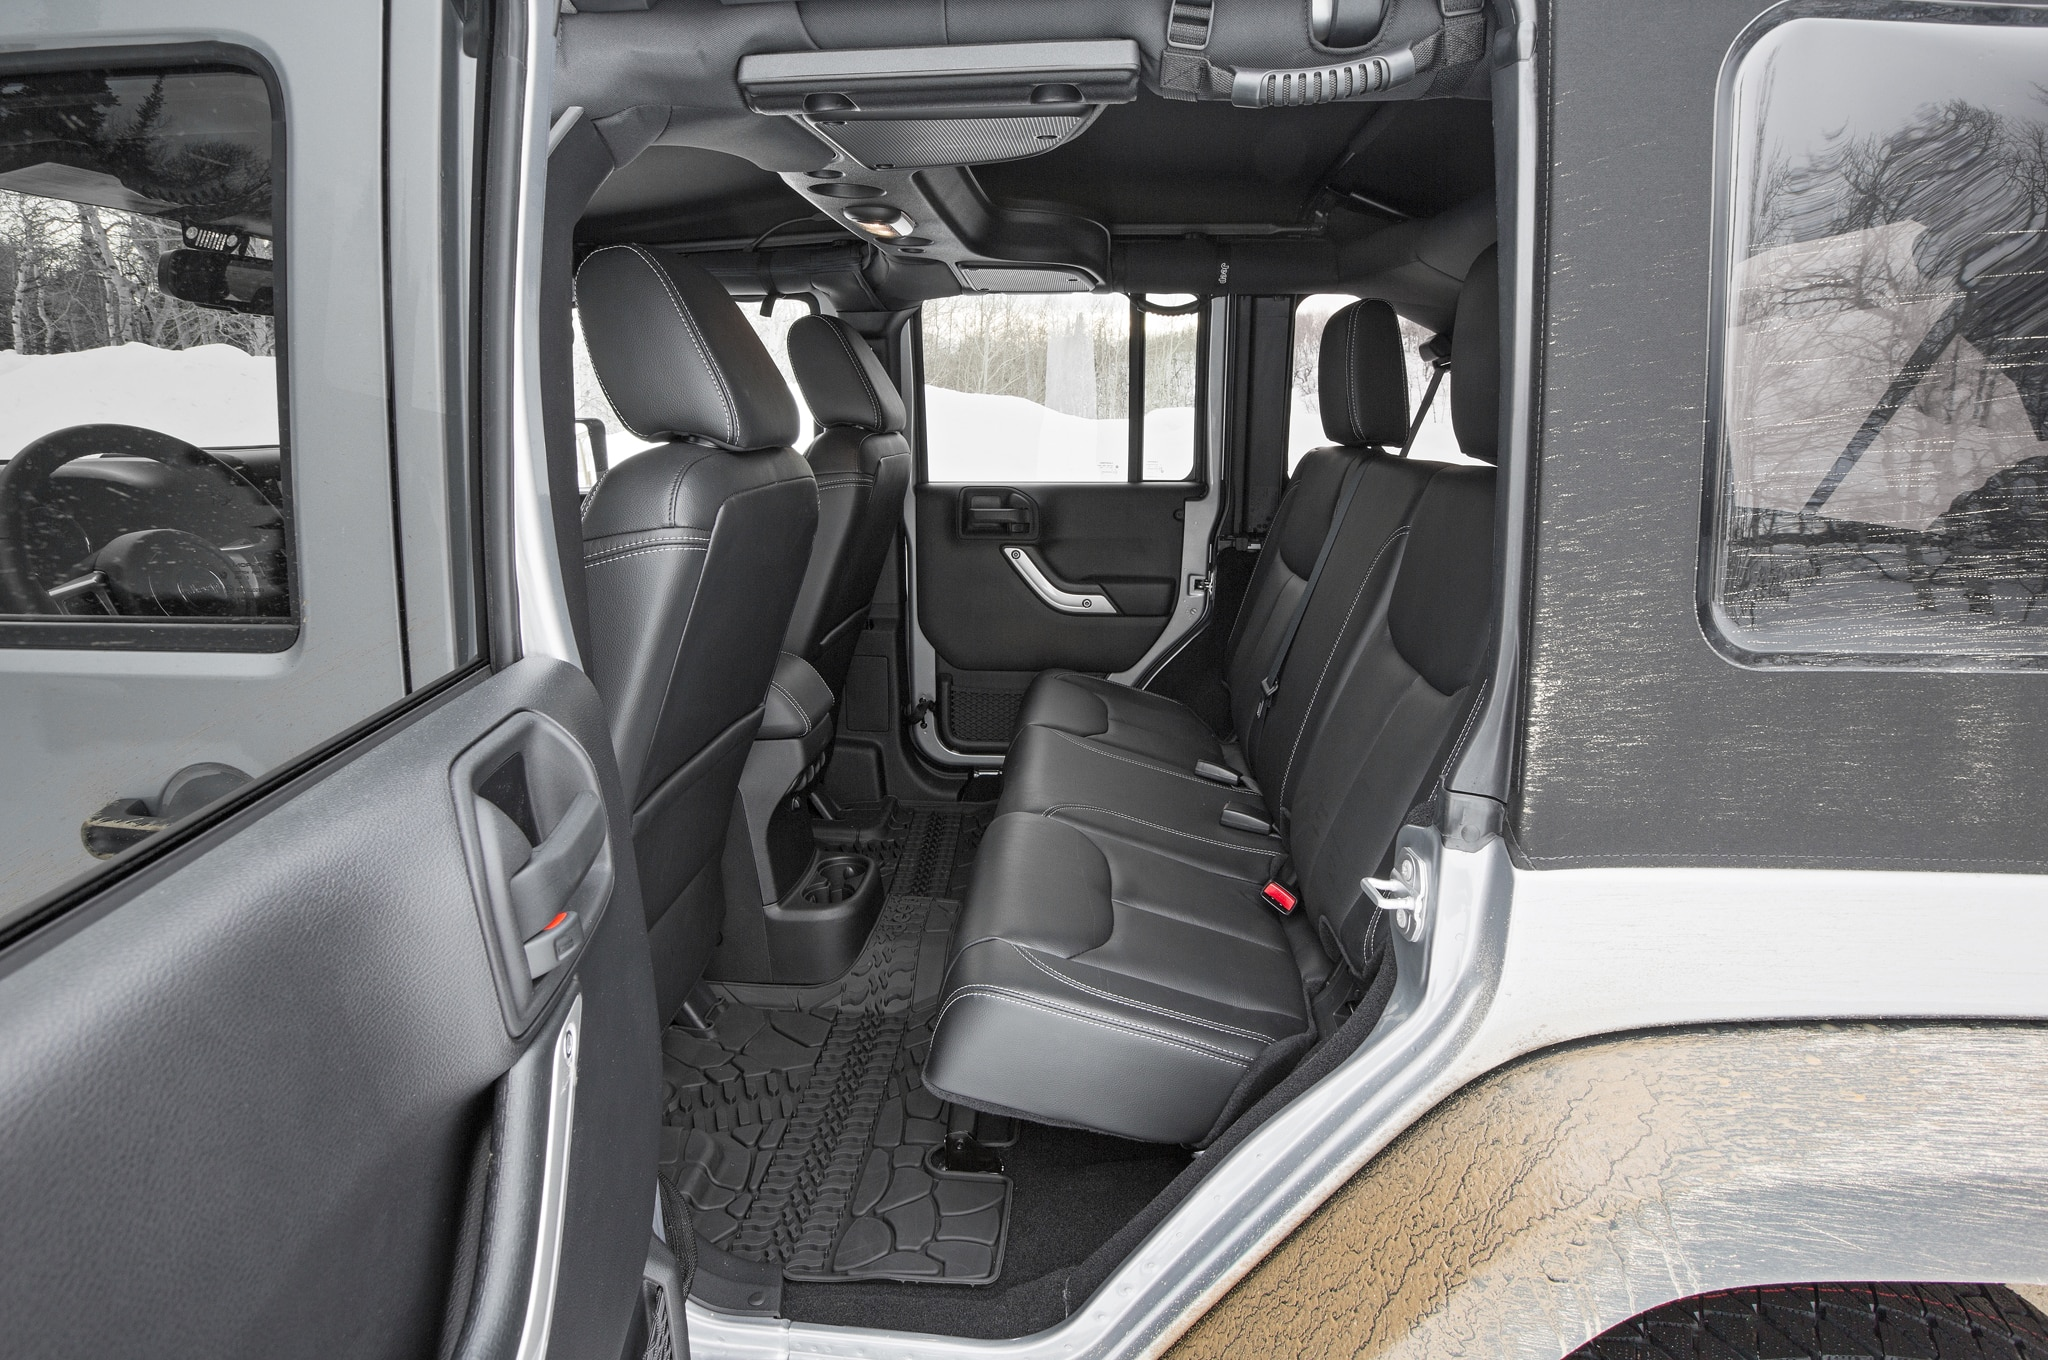 jeep wrangler unlimited rubicon 2016 primera prueba. Black Bedroom Furniture Sets. Home Design Ideas